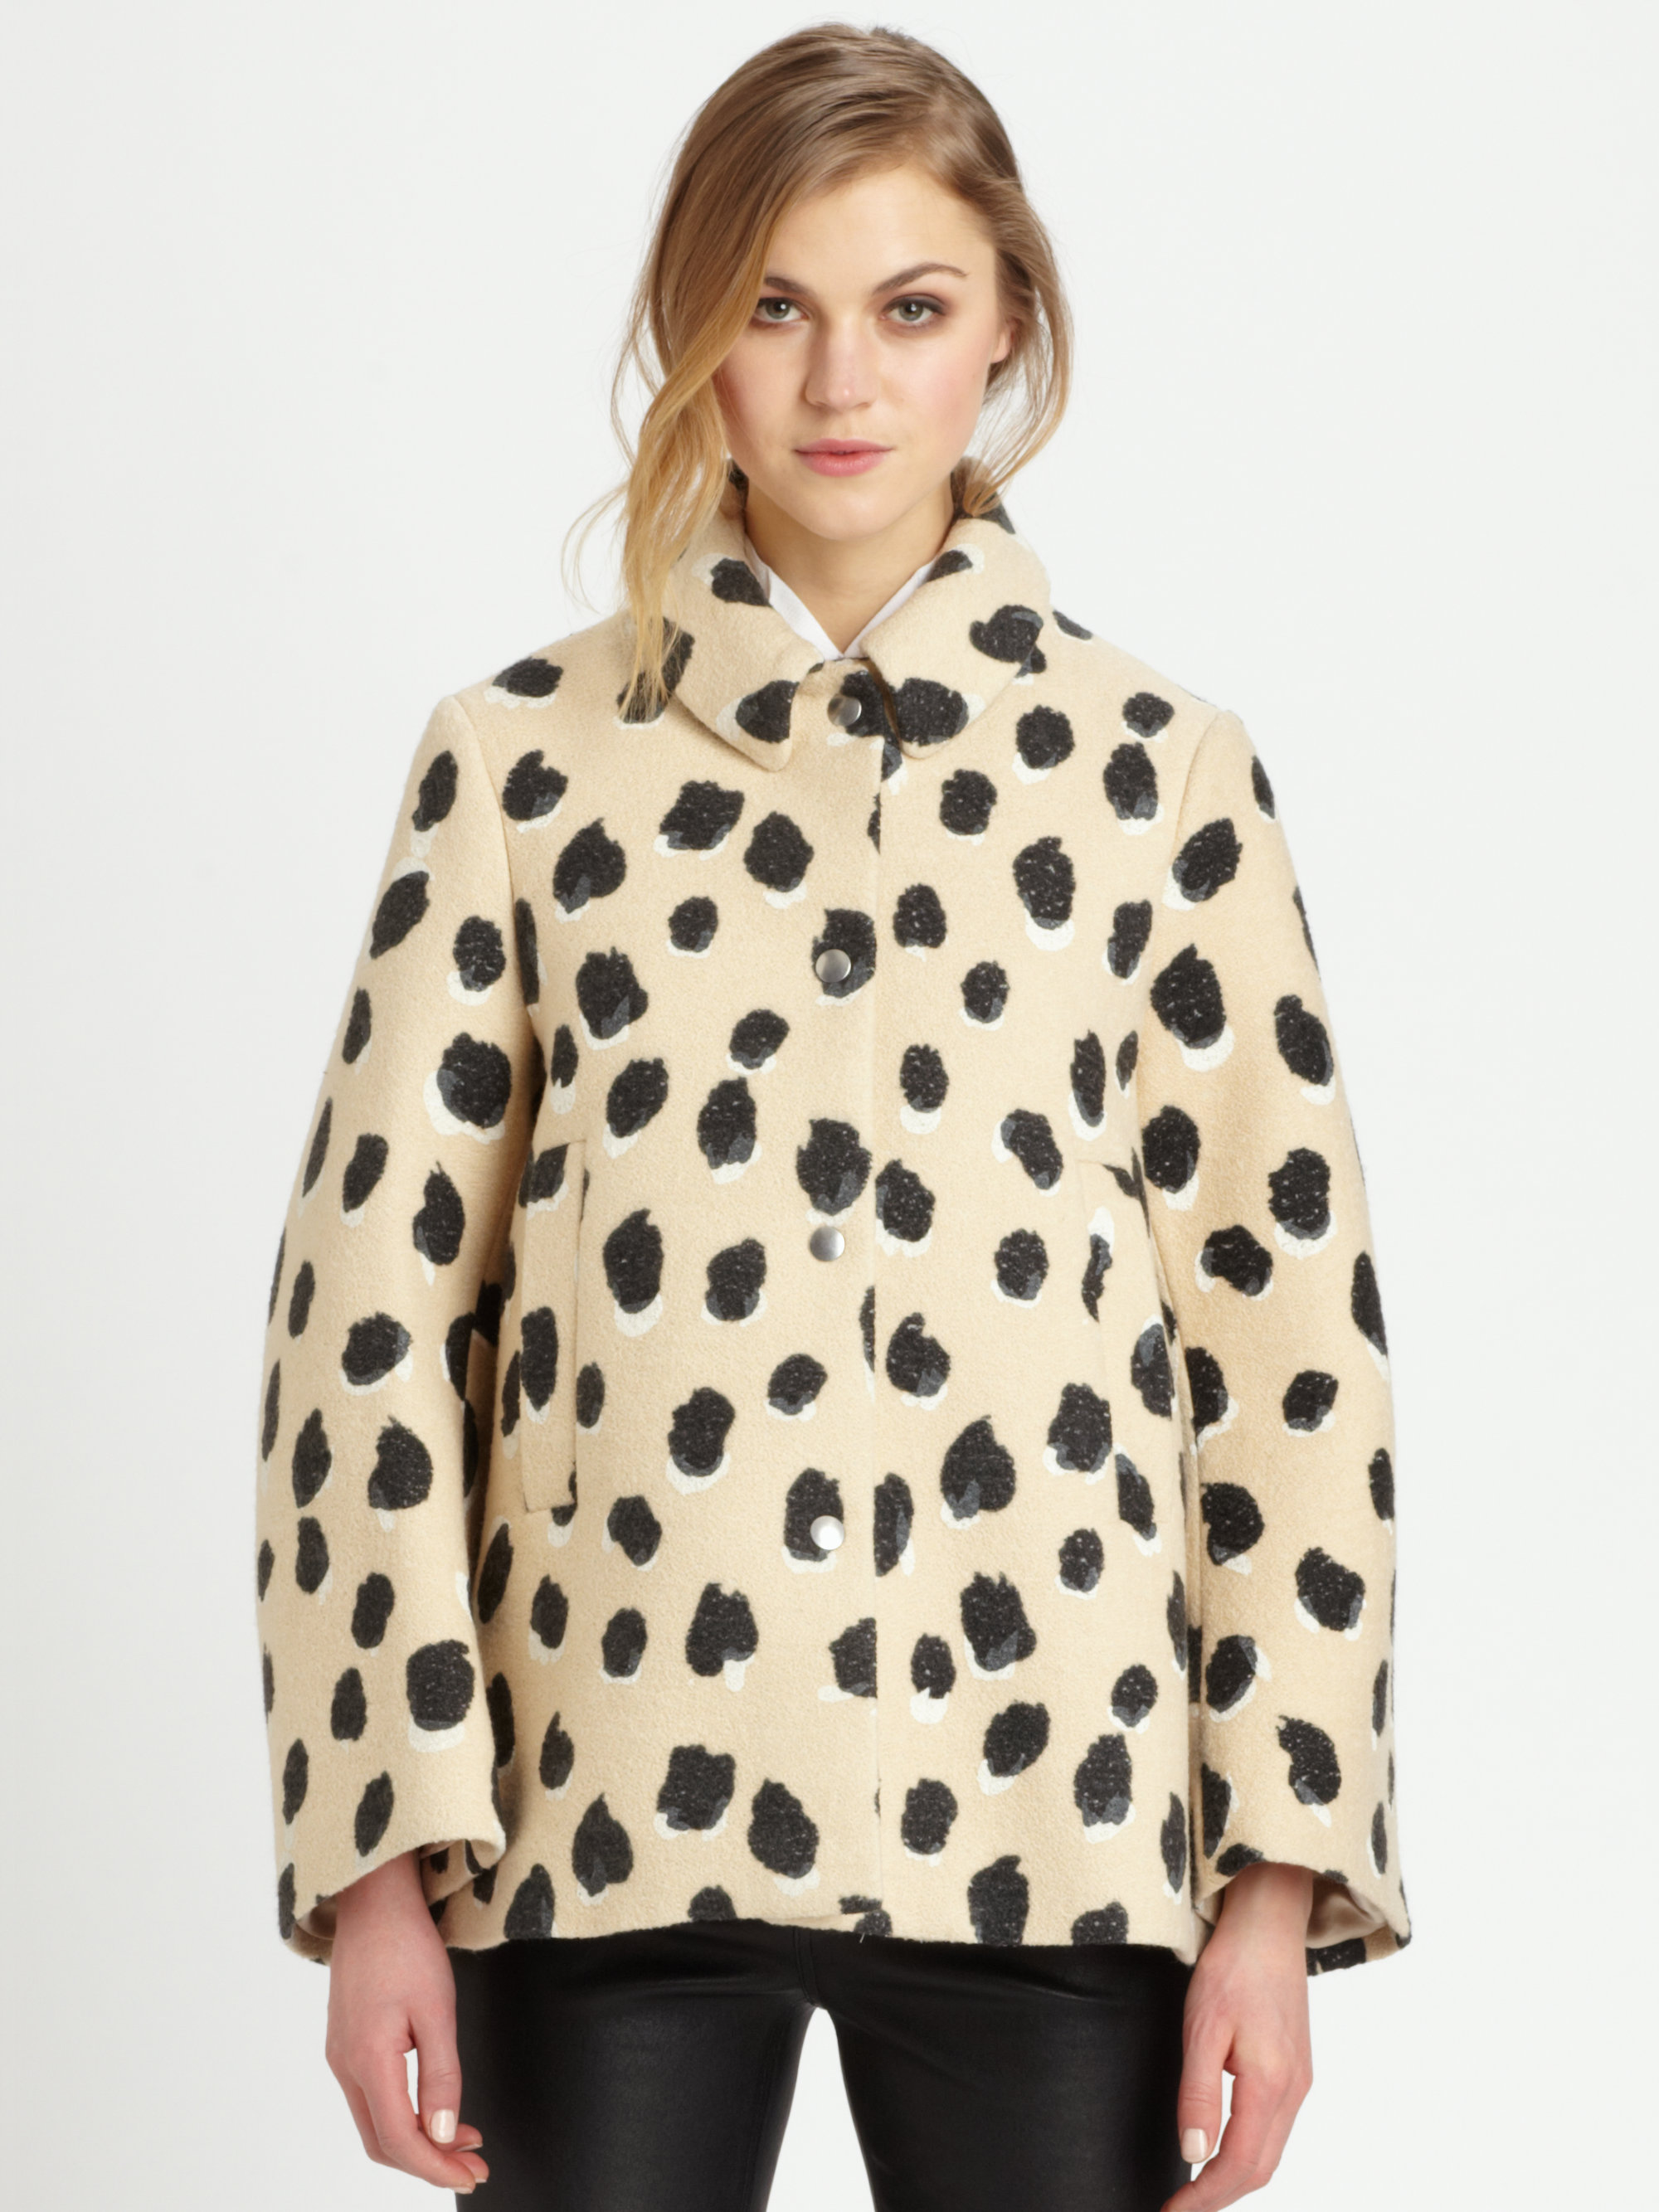 acne edith jacket